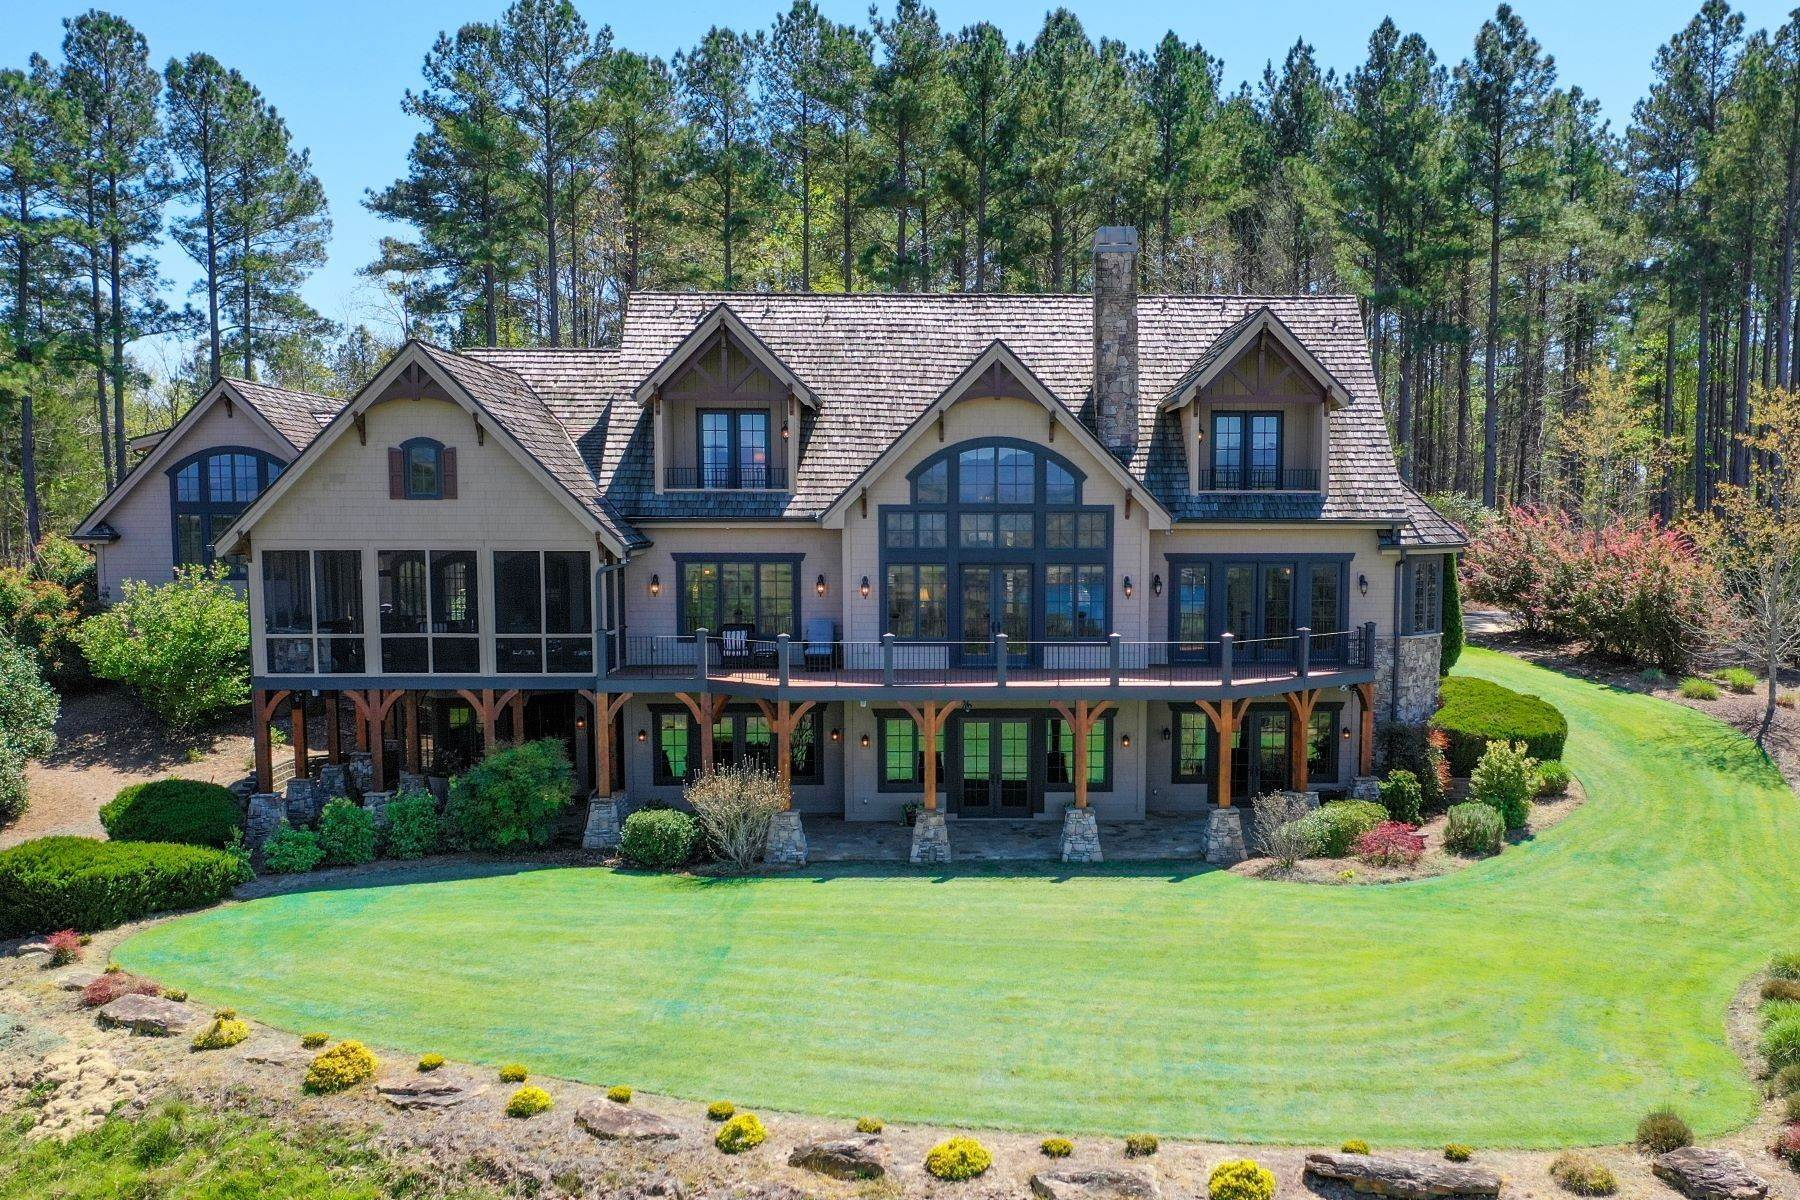 Single Family Homes for Sale at 410 Top Ridge Drive, Sunset, SC 29685 The Reserve At Lake Keowee, Sunset, SC 29685